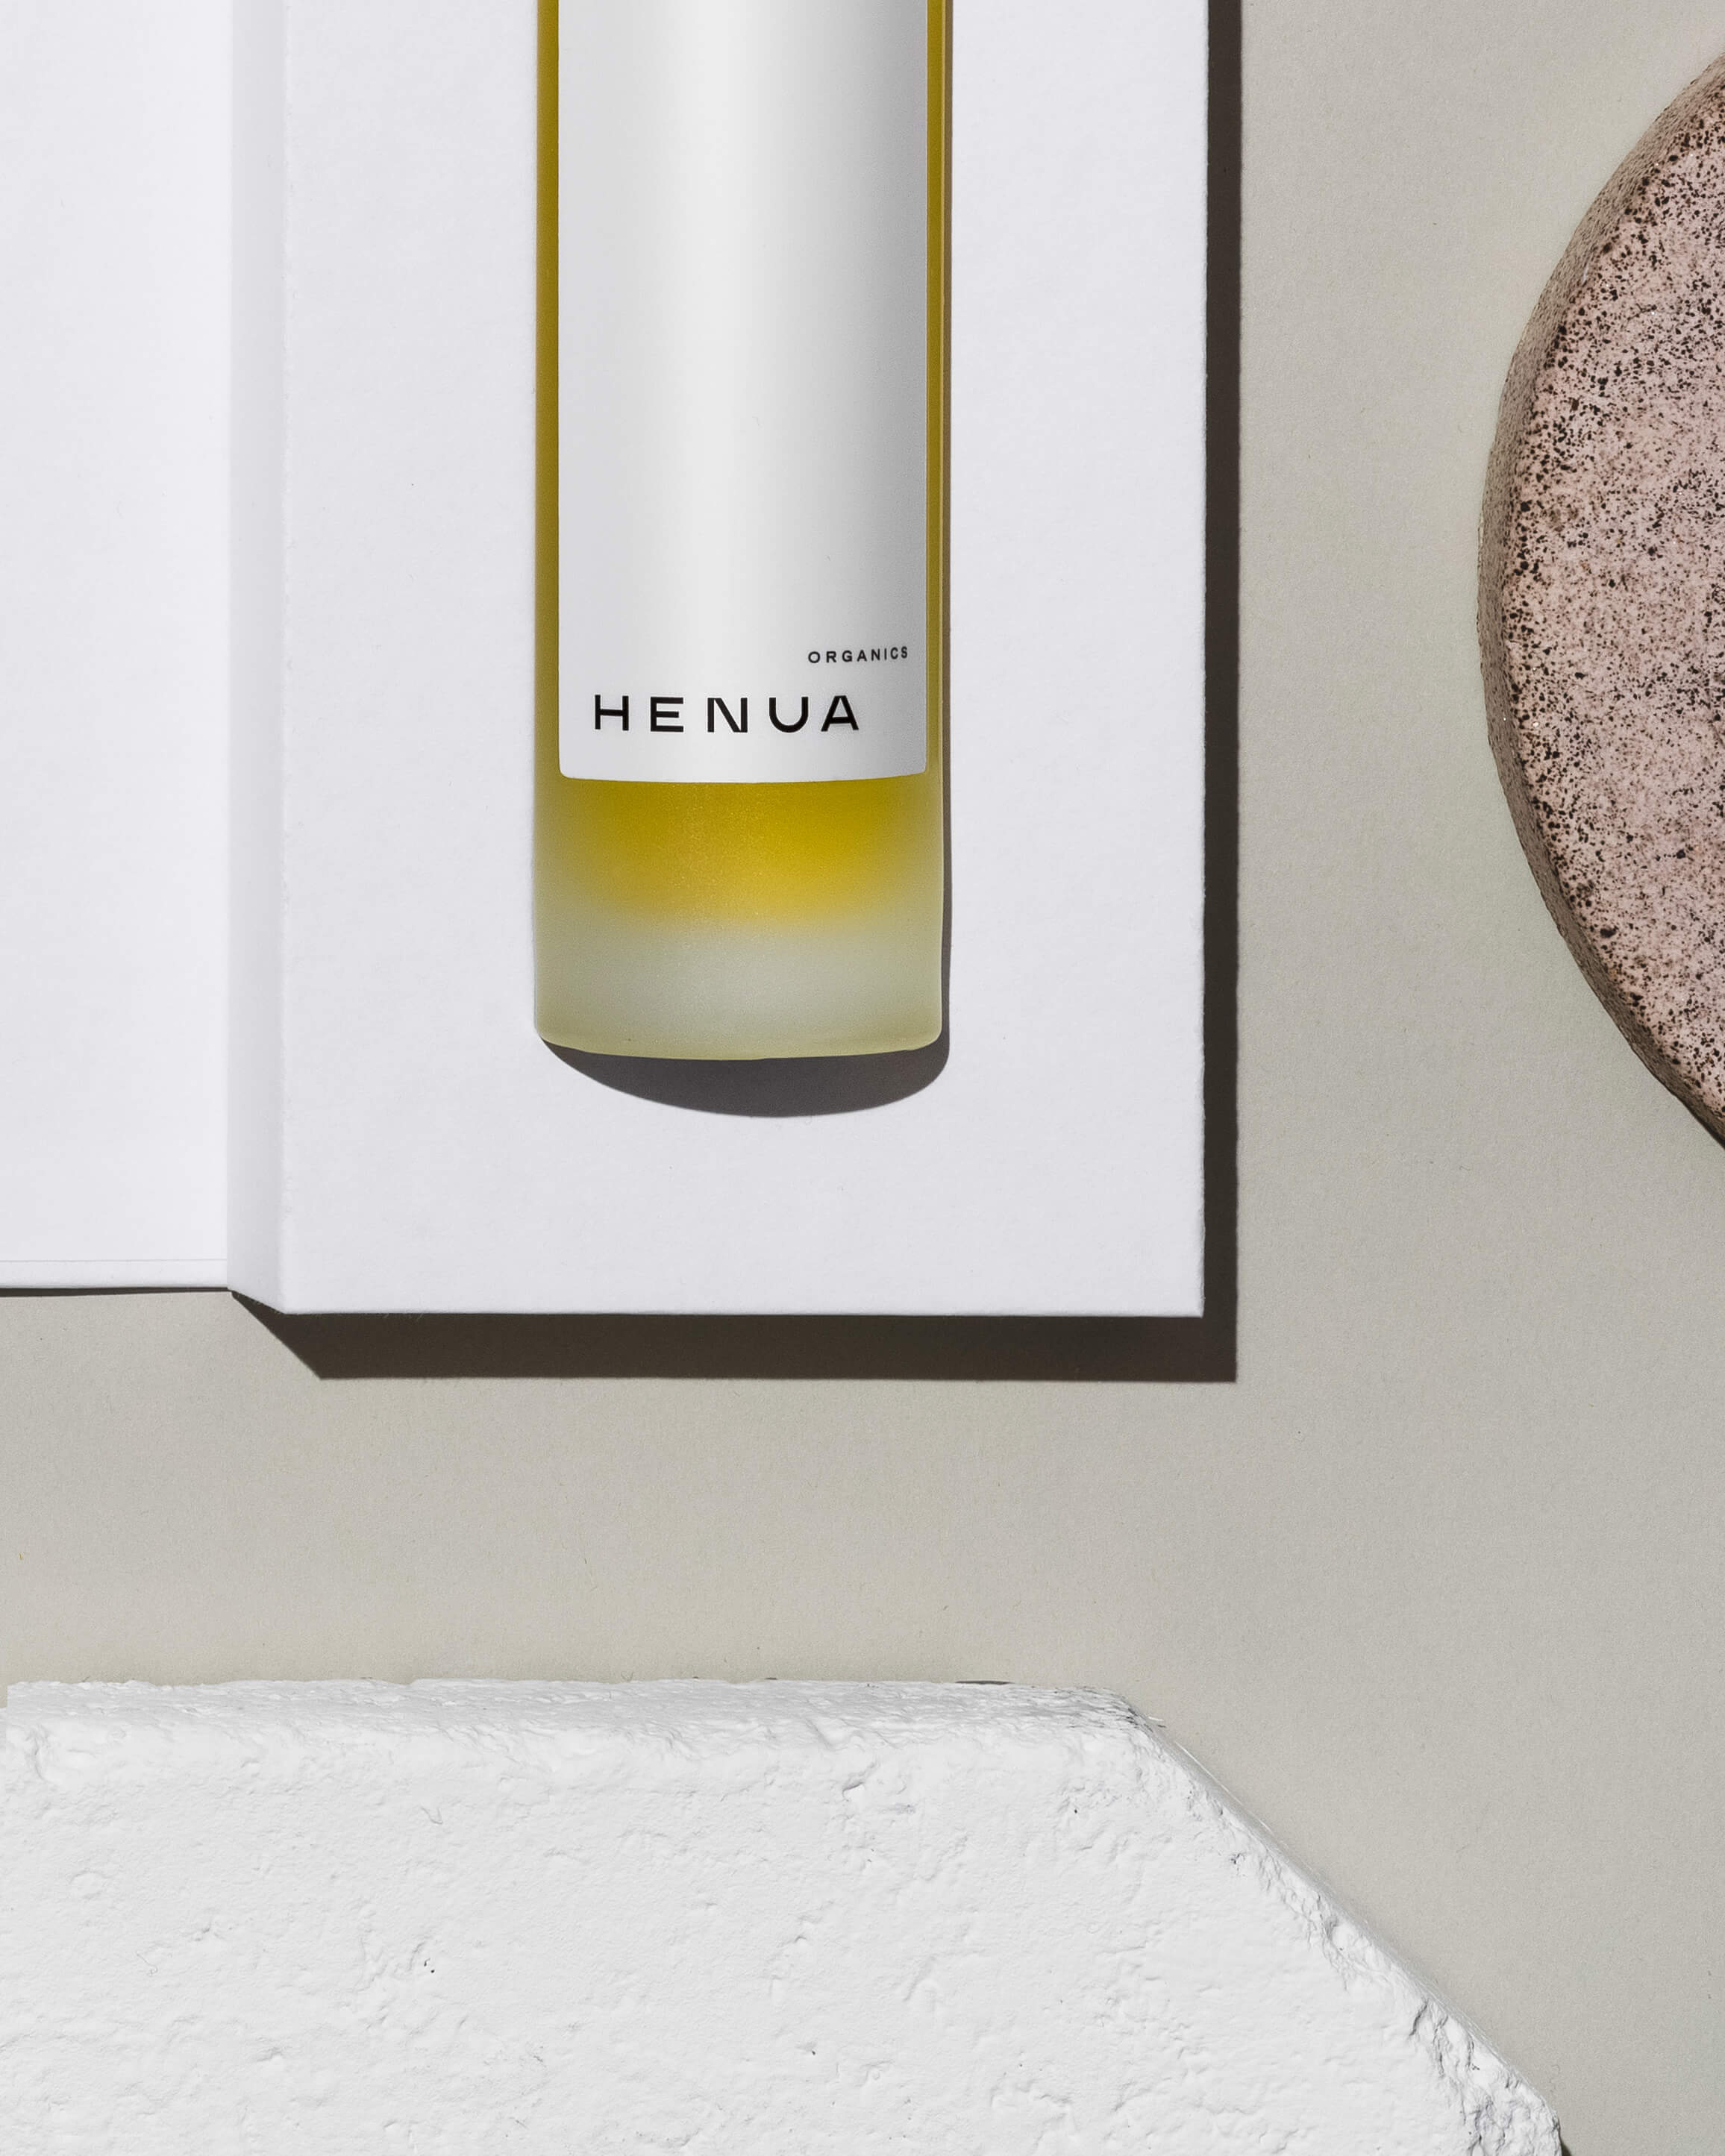 Branding, Art Direction and Packaging Design for Henua Organics, A New Finnish Luxury Skincare Brand  / World Brand Design Society